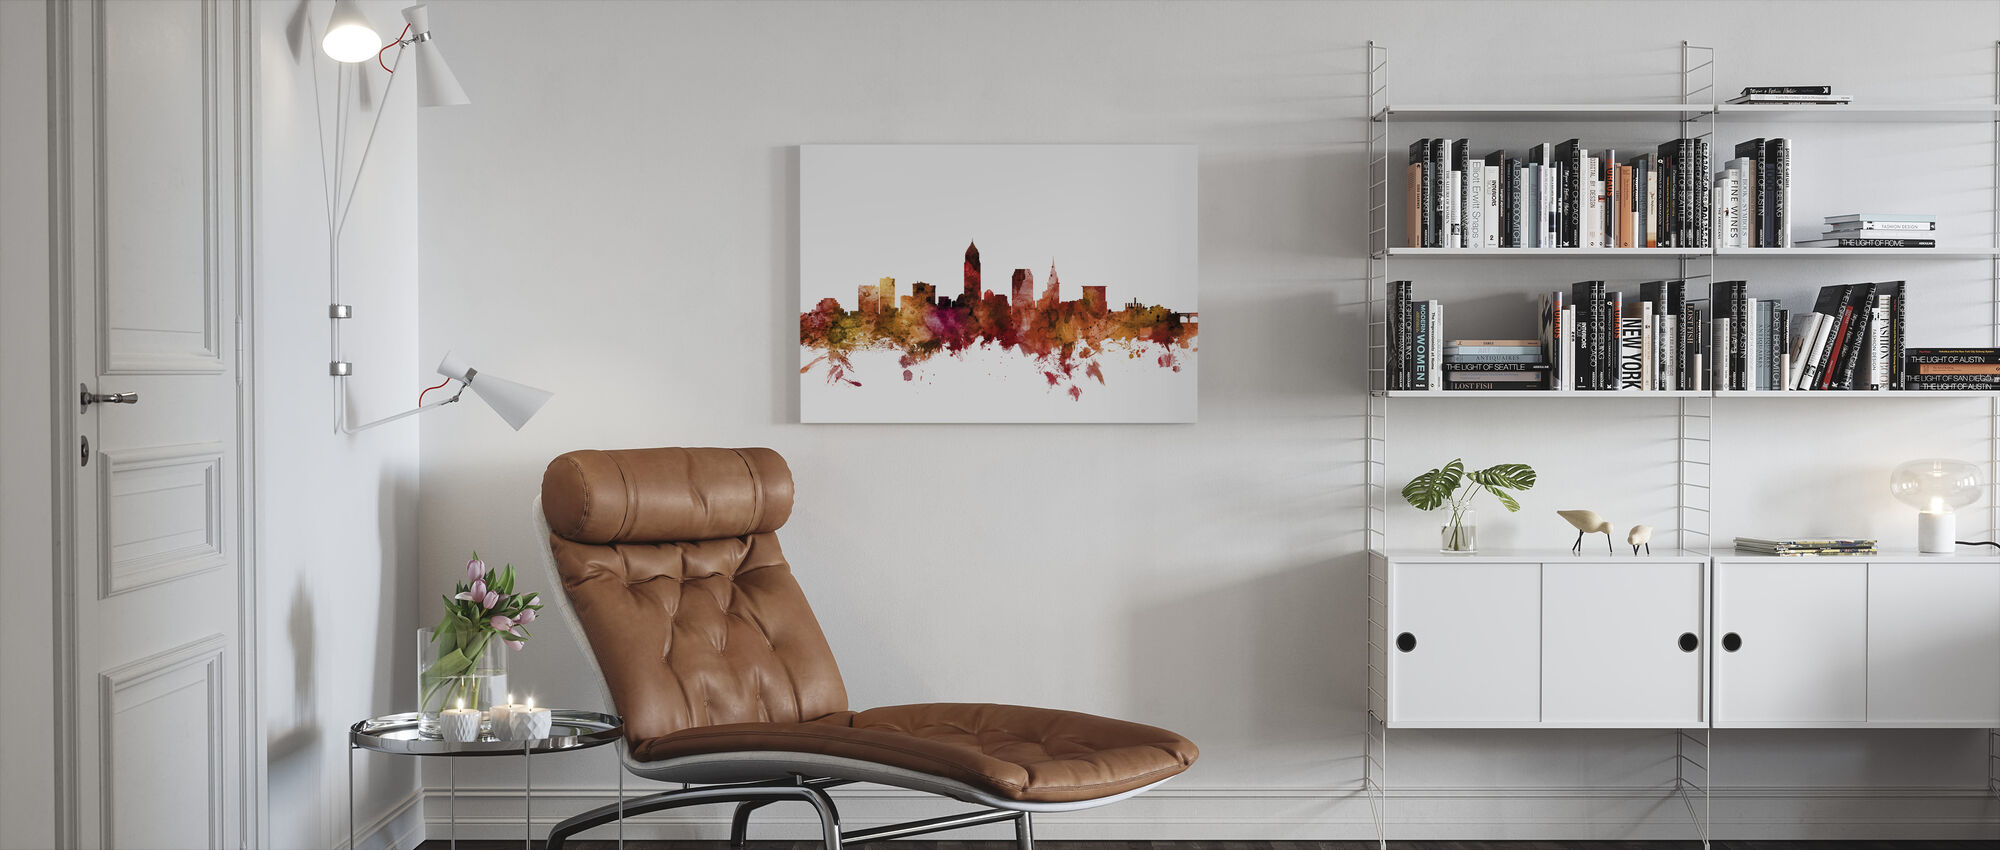 Cleveland Ohio Skyline - Canvas print - Living Room